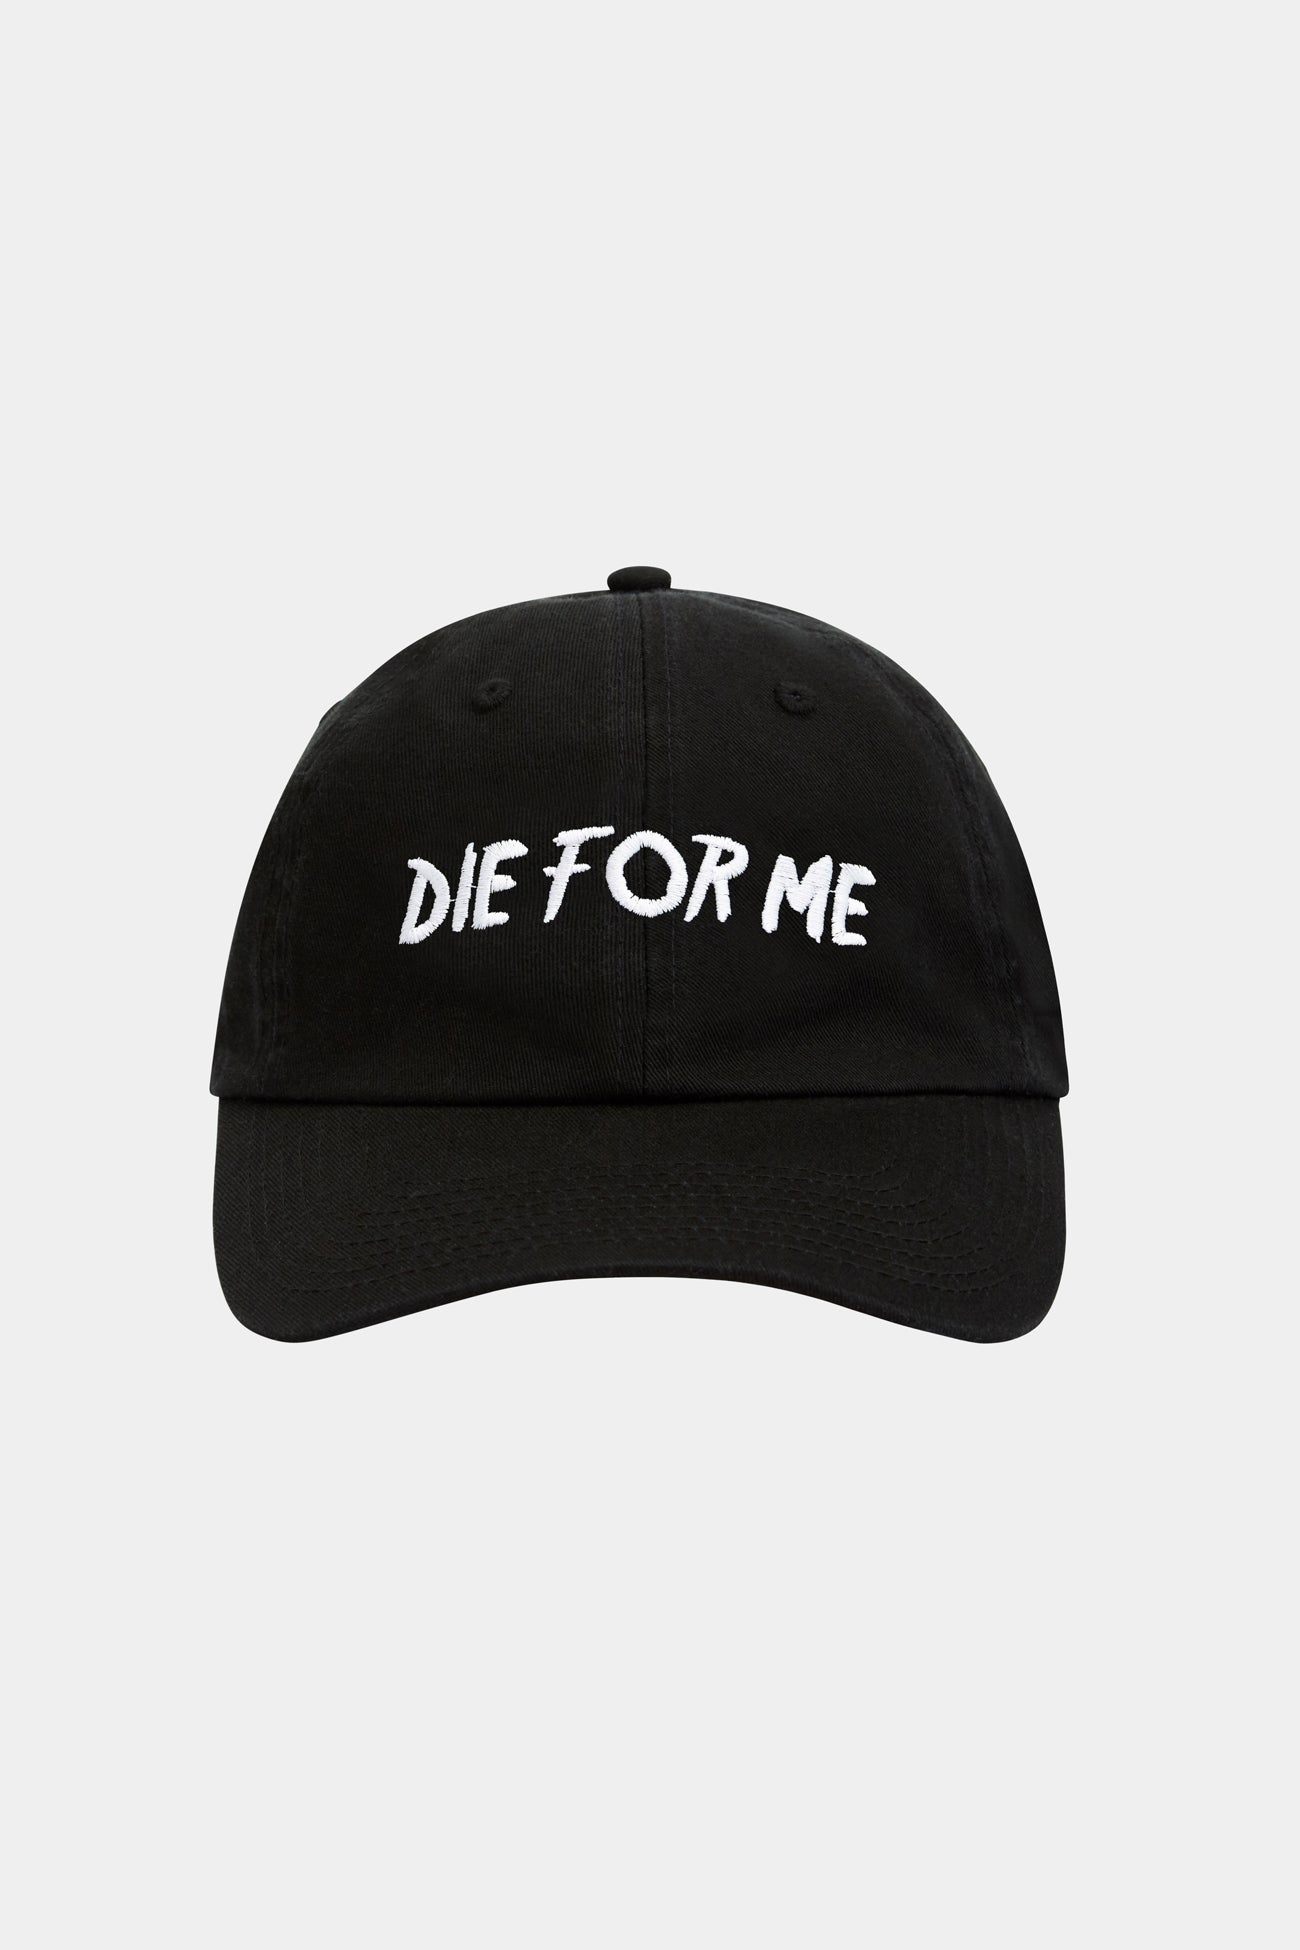 DIE FOR ME CAP